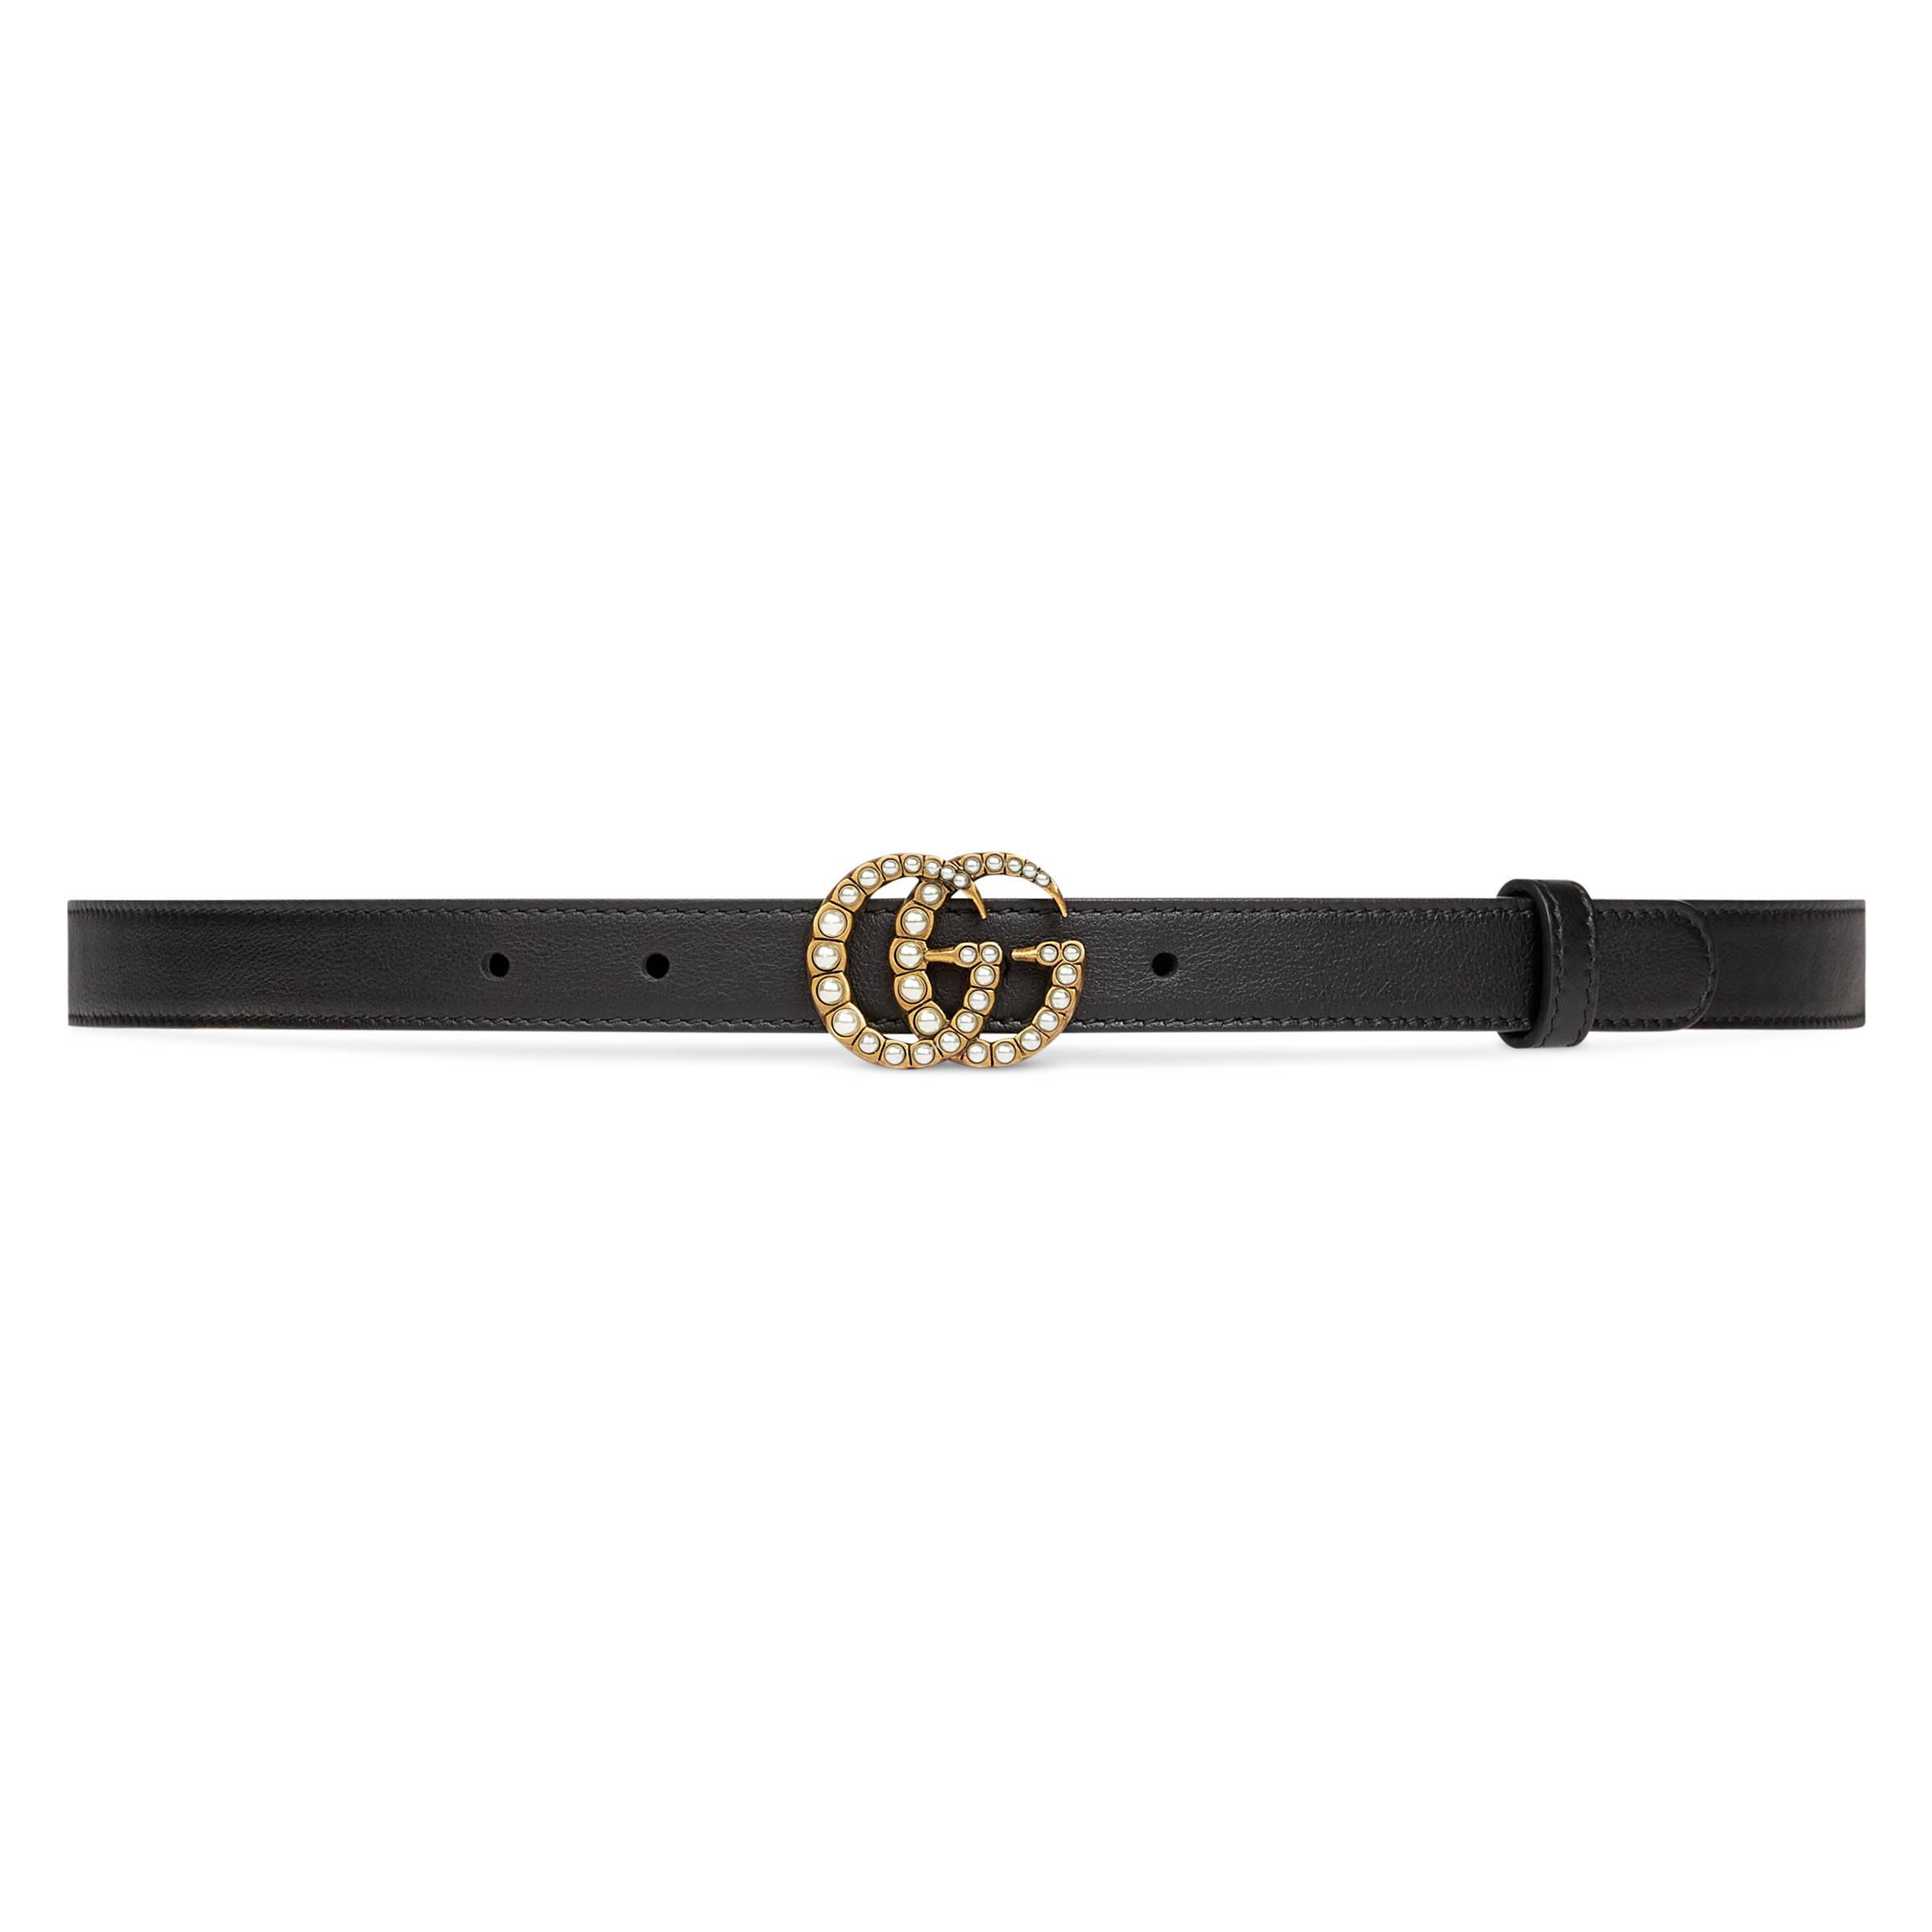 7c92482b68c Gucci Leather Belt With Pearl Double G Buckle in Black - Save 19% - Lyst